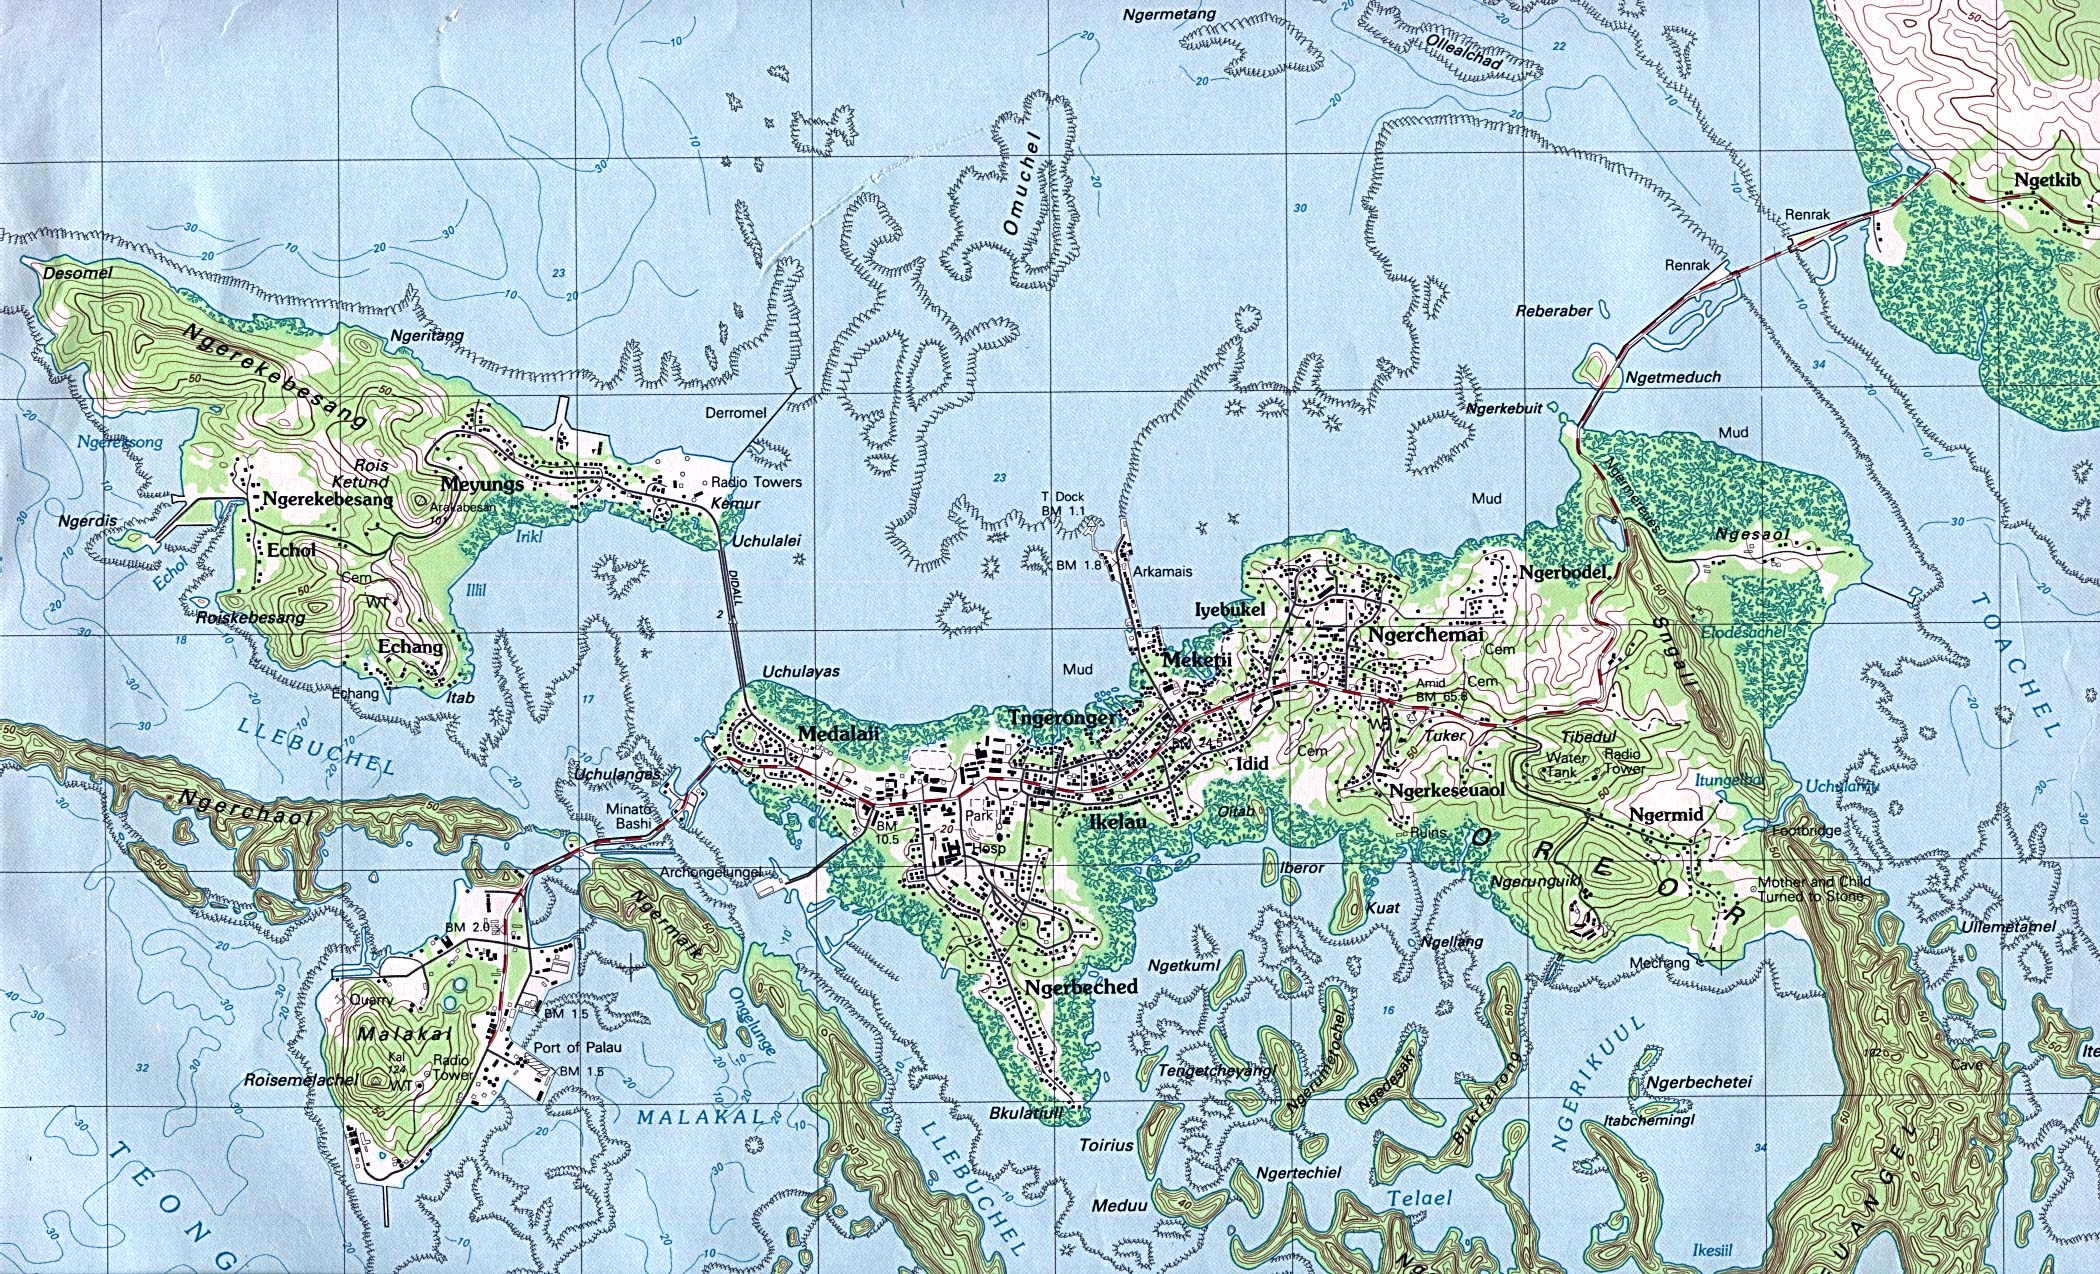 Map Of Palau , Palau - Koror, Oreor Island [Topographic Map] original scale 1:25,000. Portion of Oreor sheet, U.S.G.S. 1983 (906K) The capital city